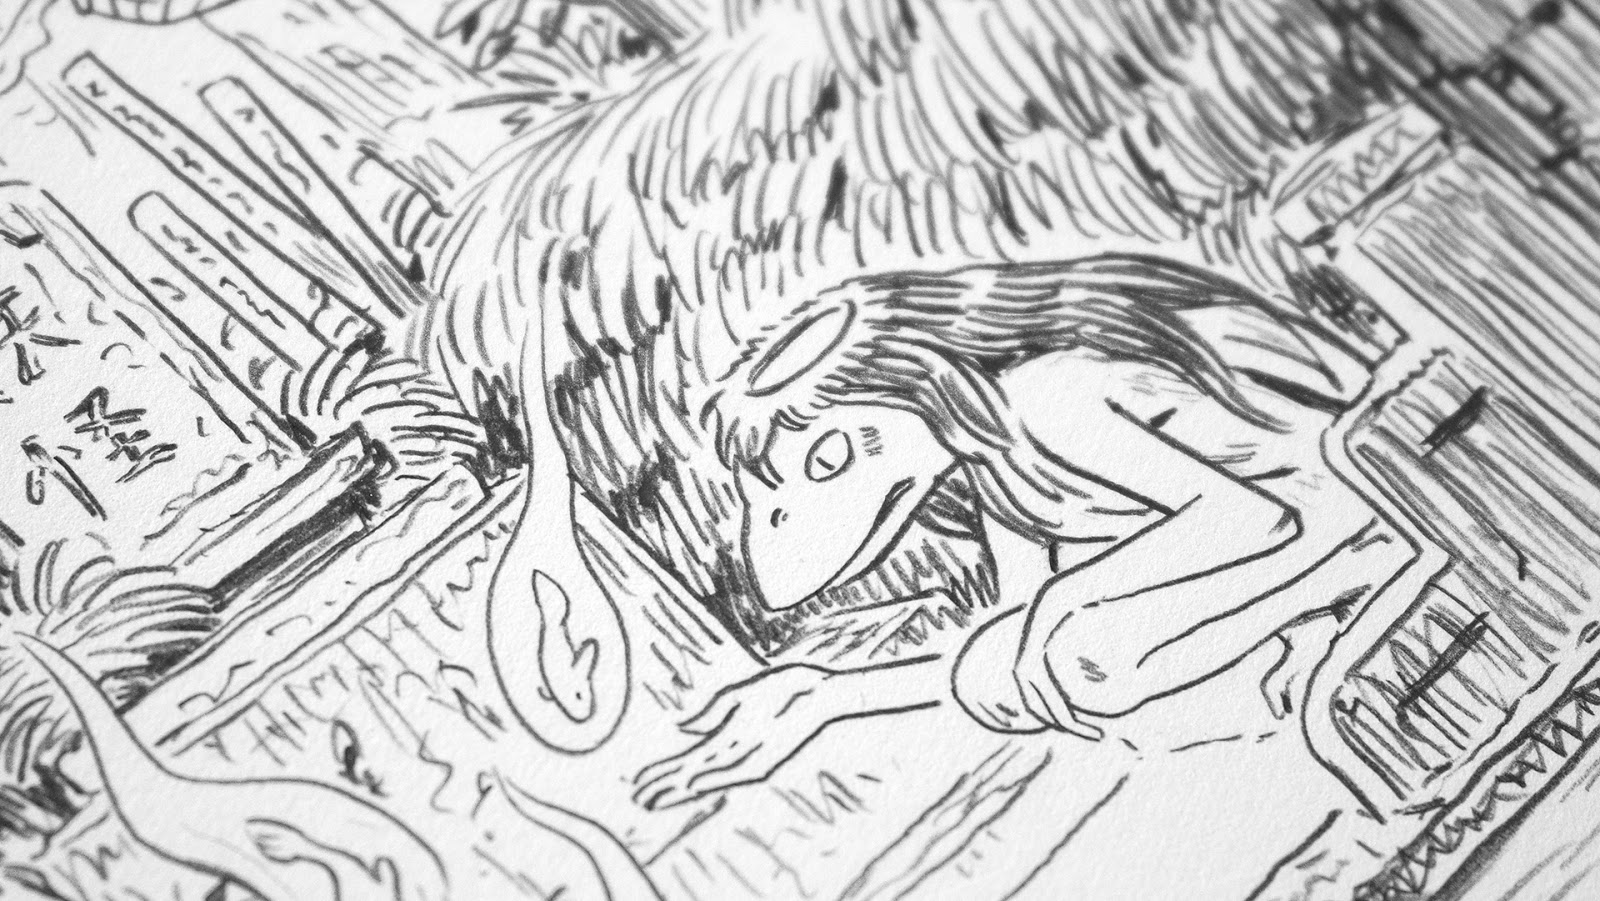 pencils of a detail from the yokai gathering illustration